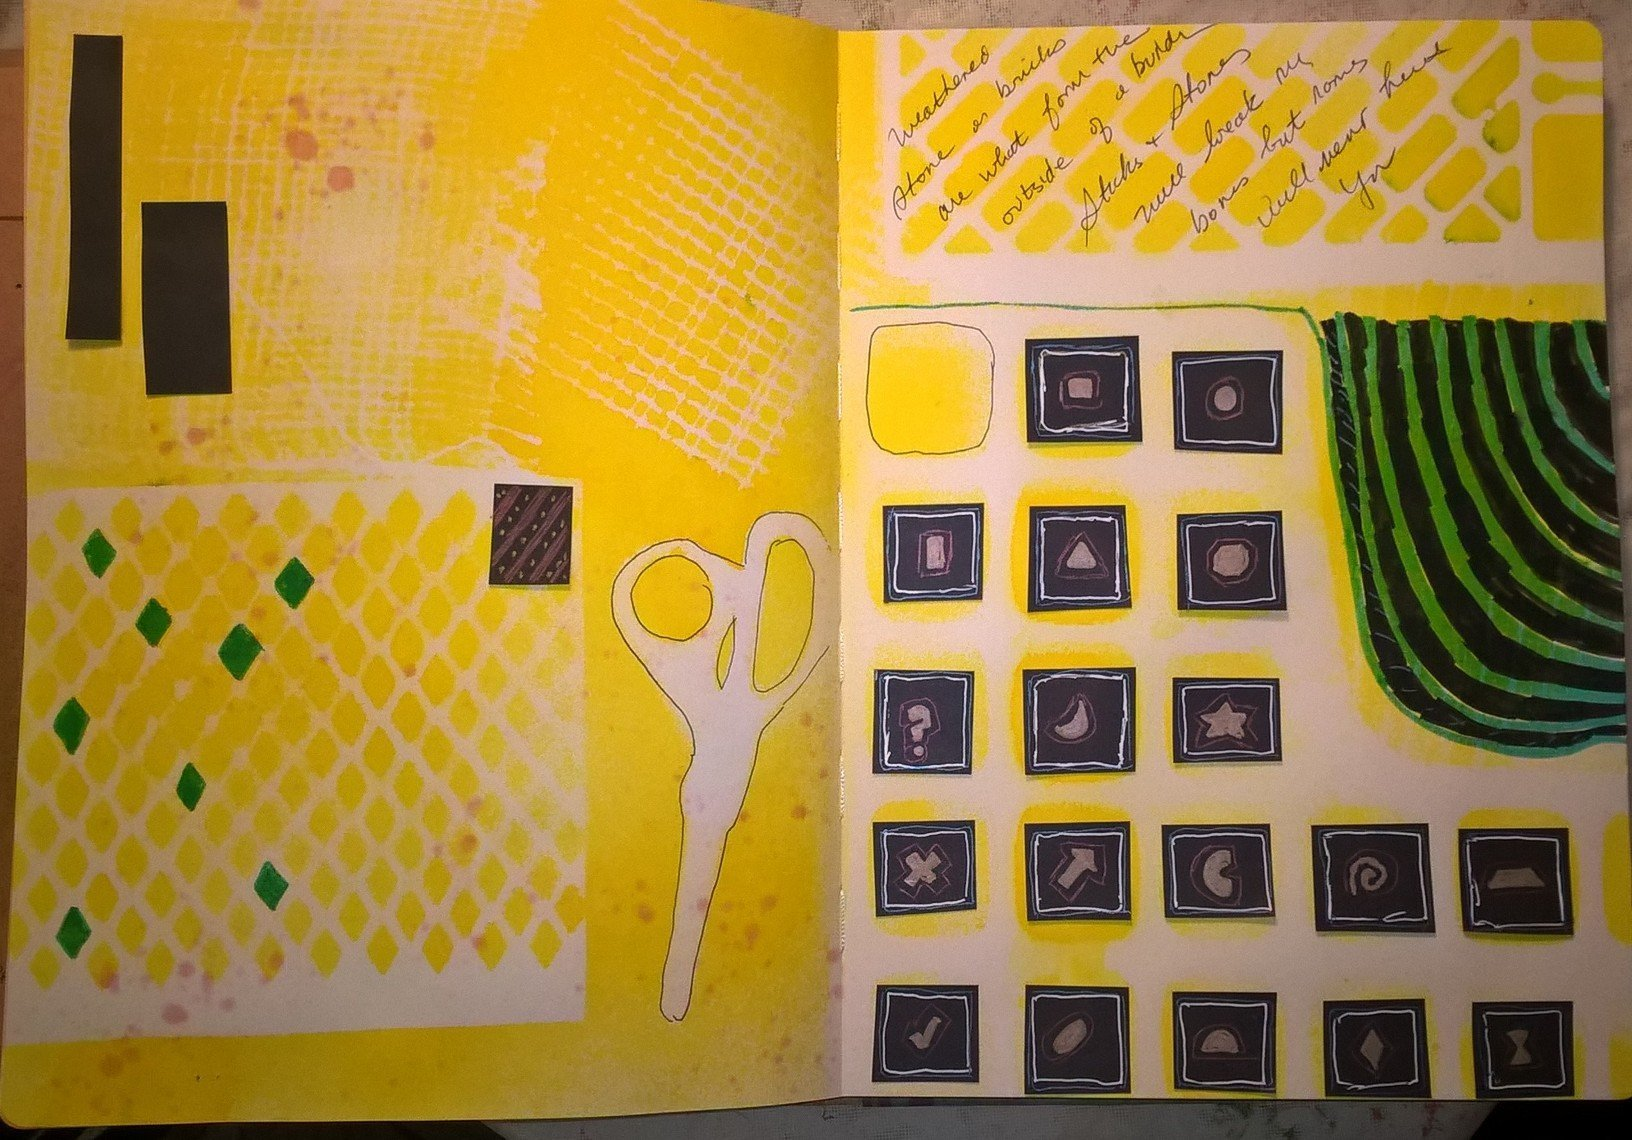 journal page created with every day objects